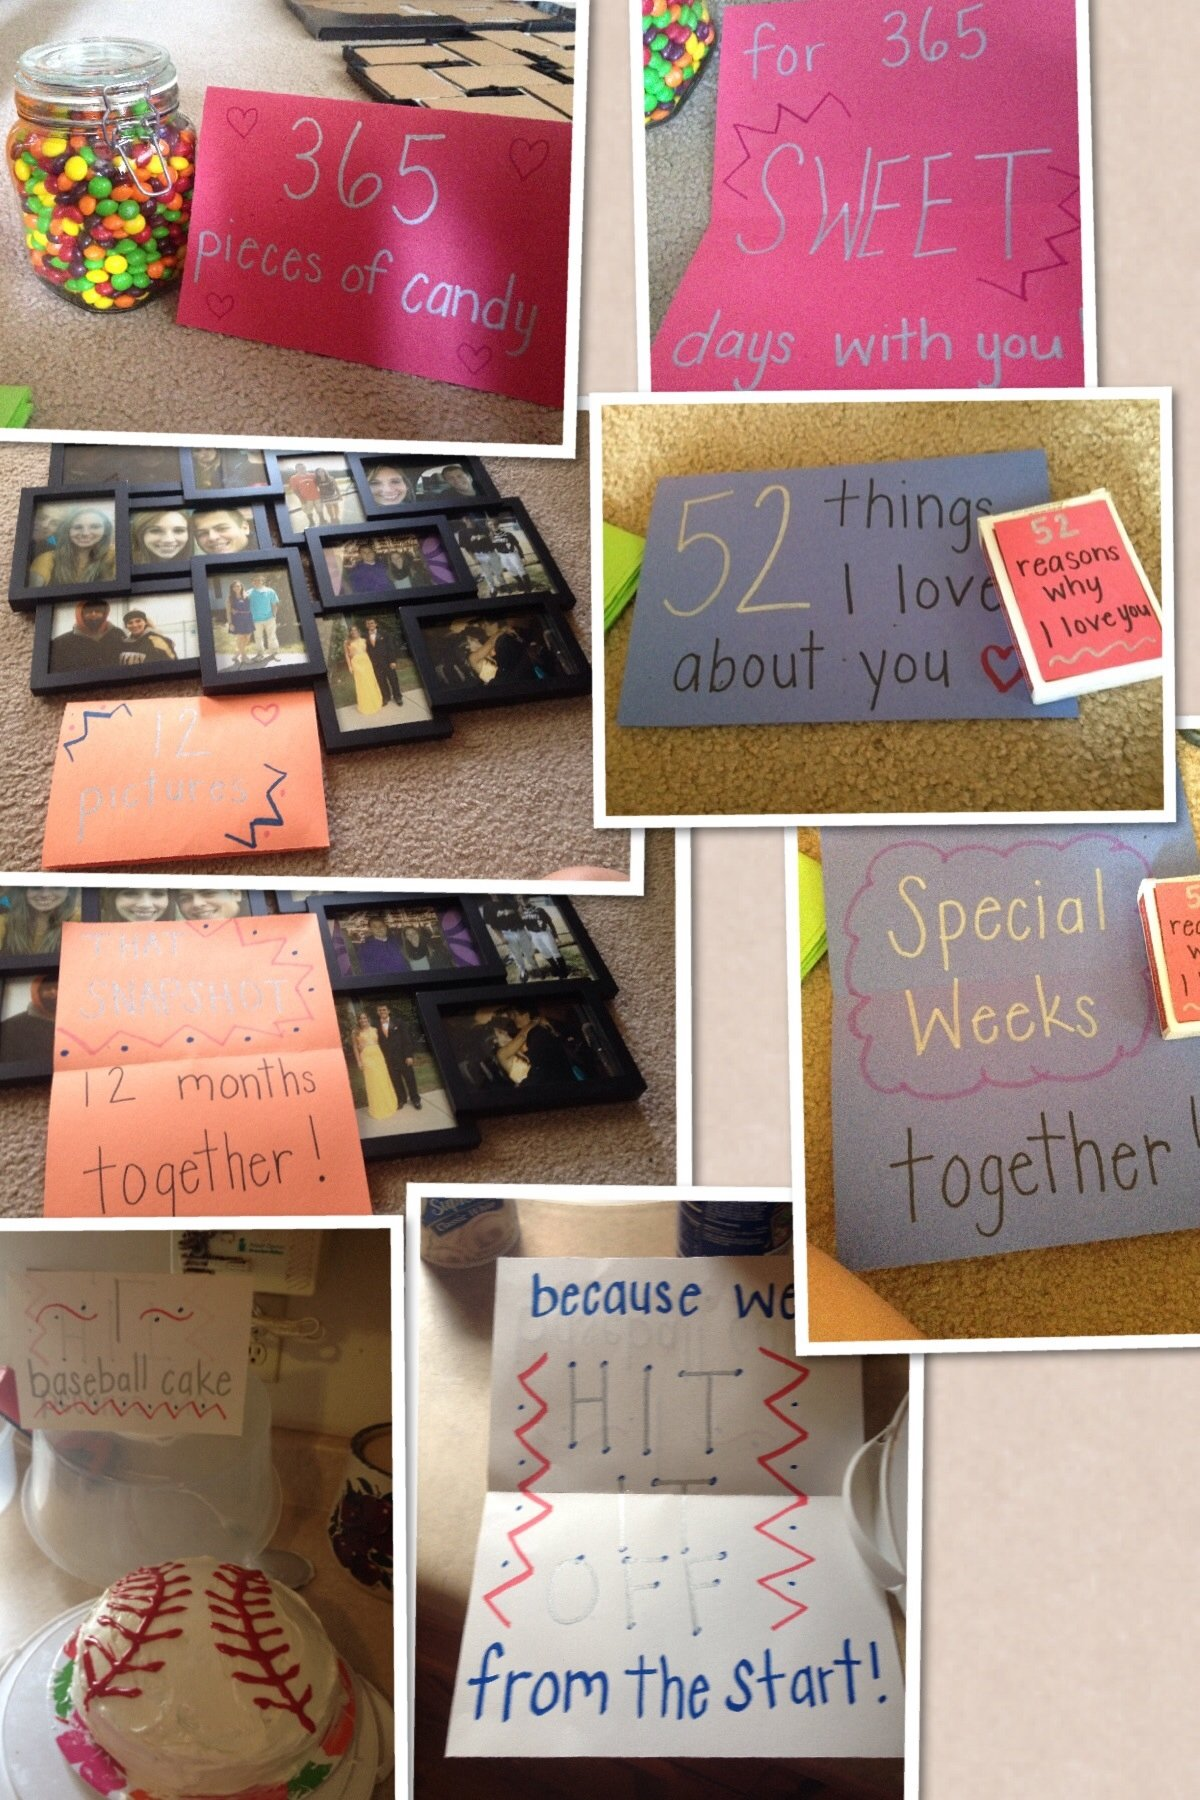 10 Fashionable One Year Anniversary Gift Ideas gift i made for our 1 year anniversary ideas pinterest 2